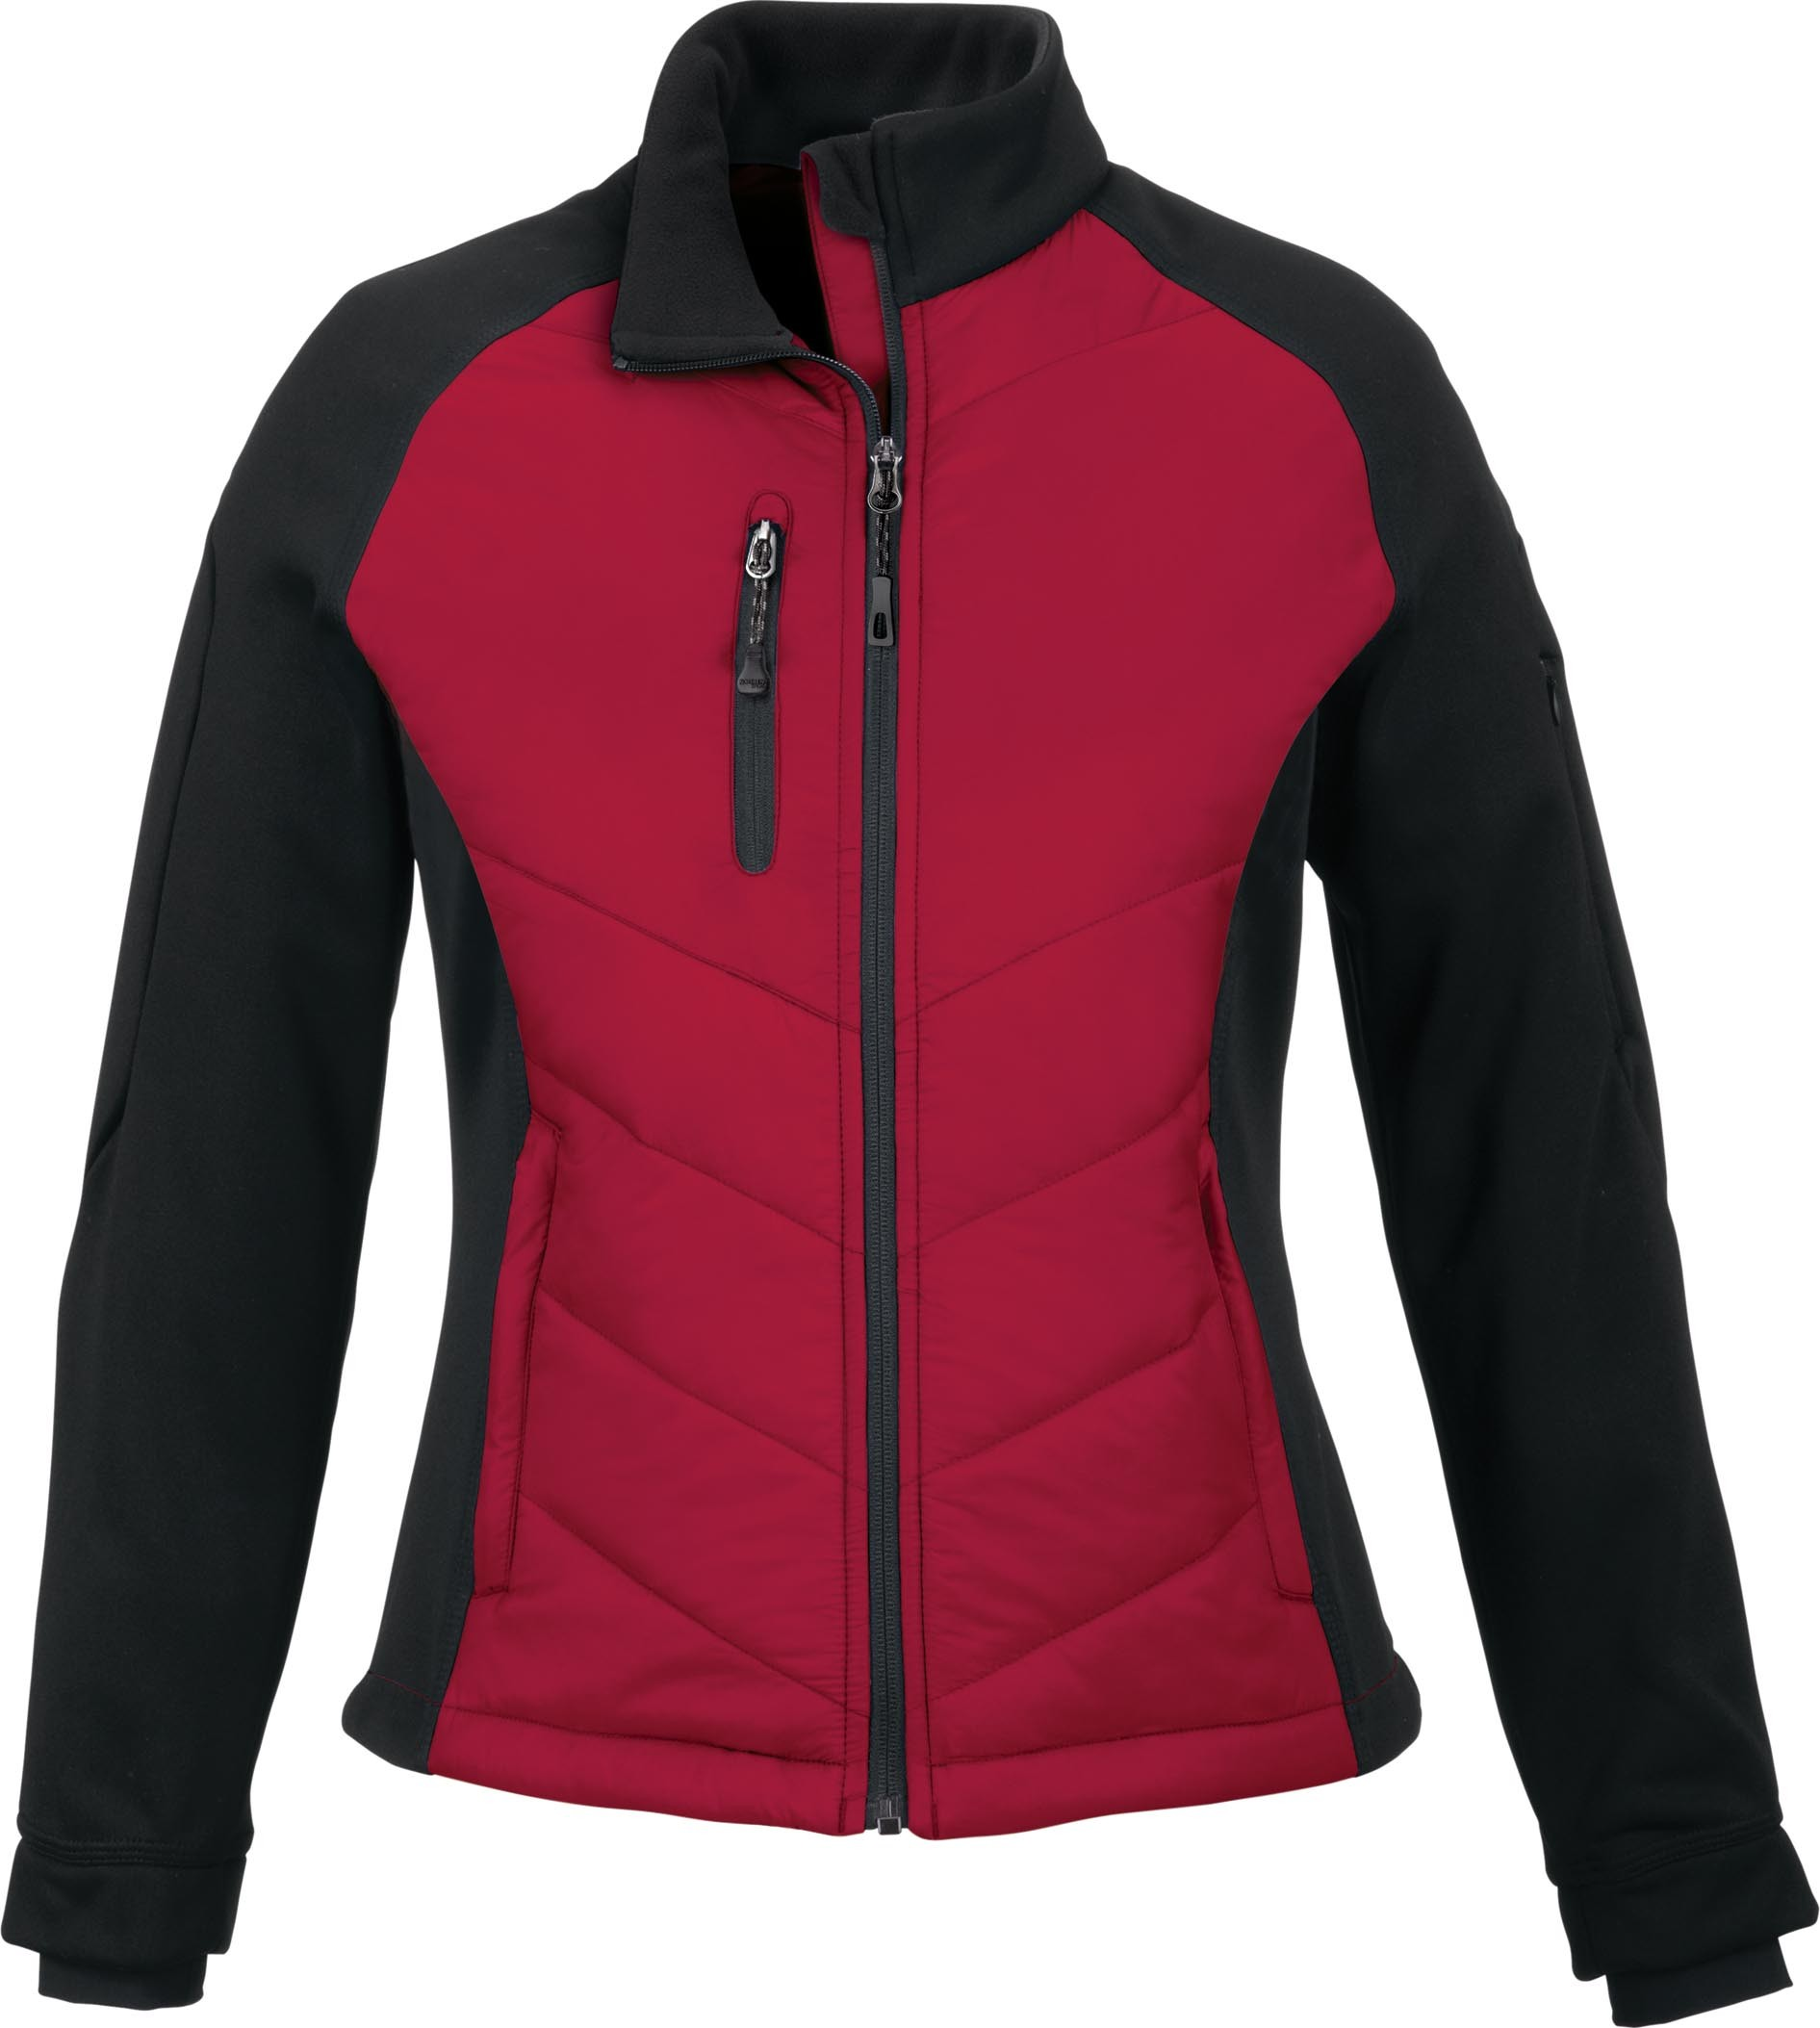 Ash City UTK 1 Warm.Logik 78662 - Epic Ladies' Insulated Hybrid Bonded Fleece Jacket